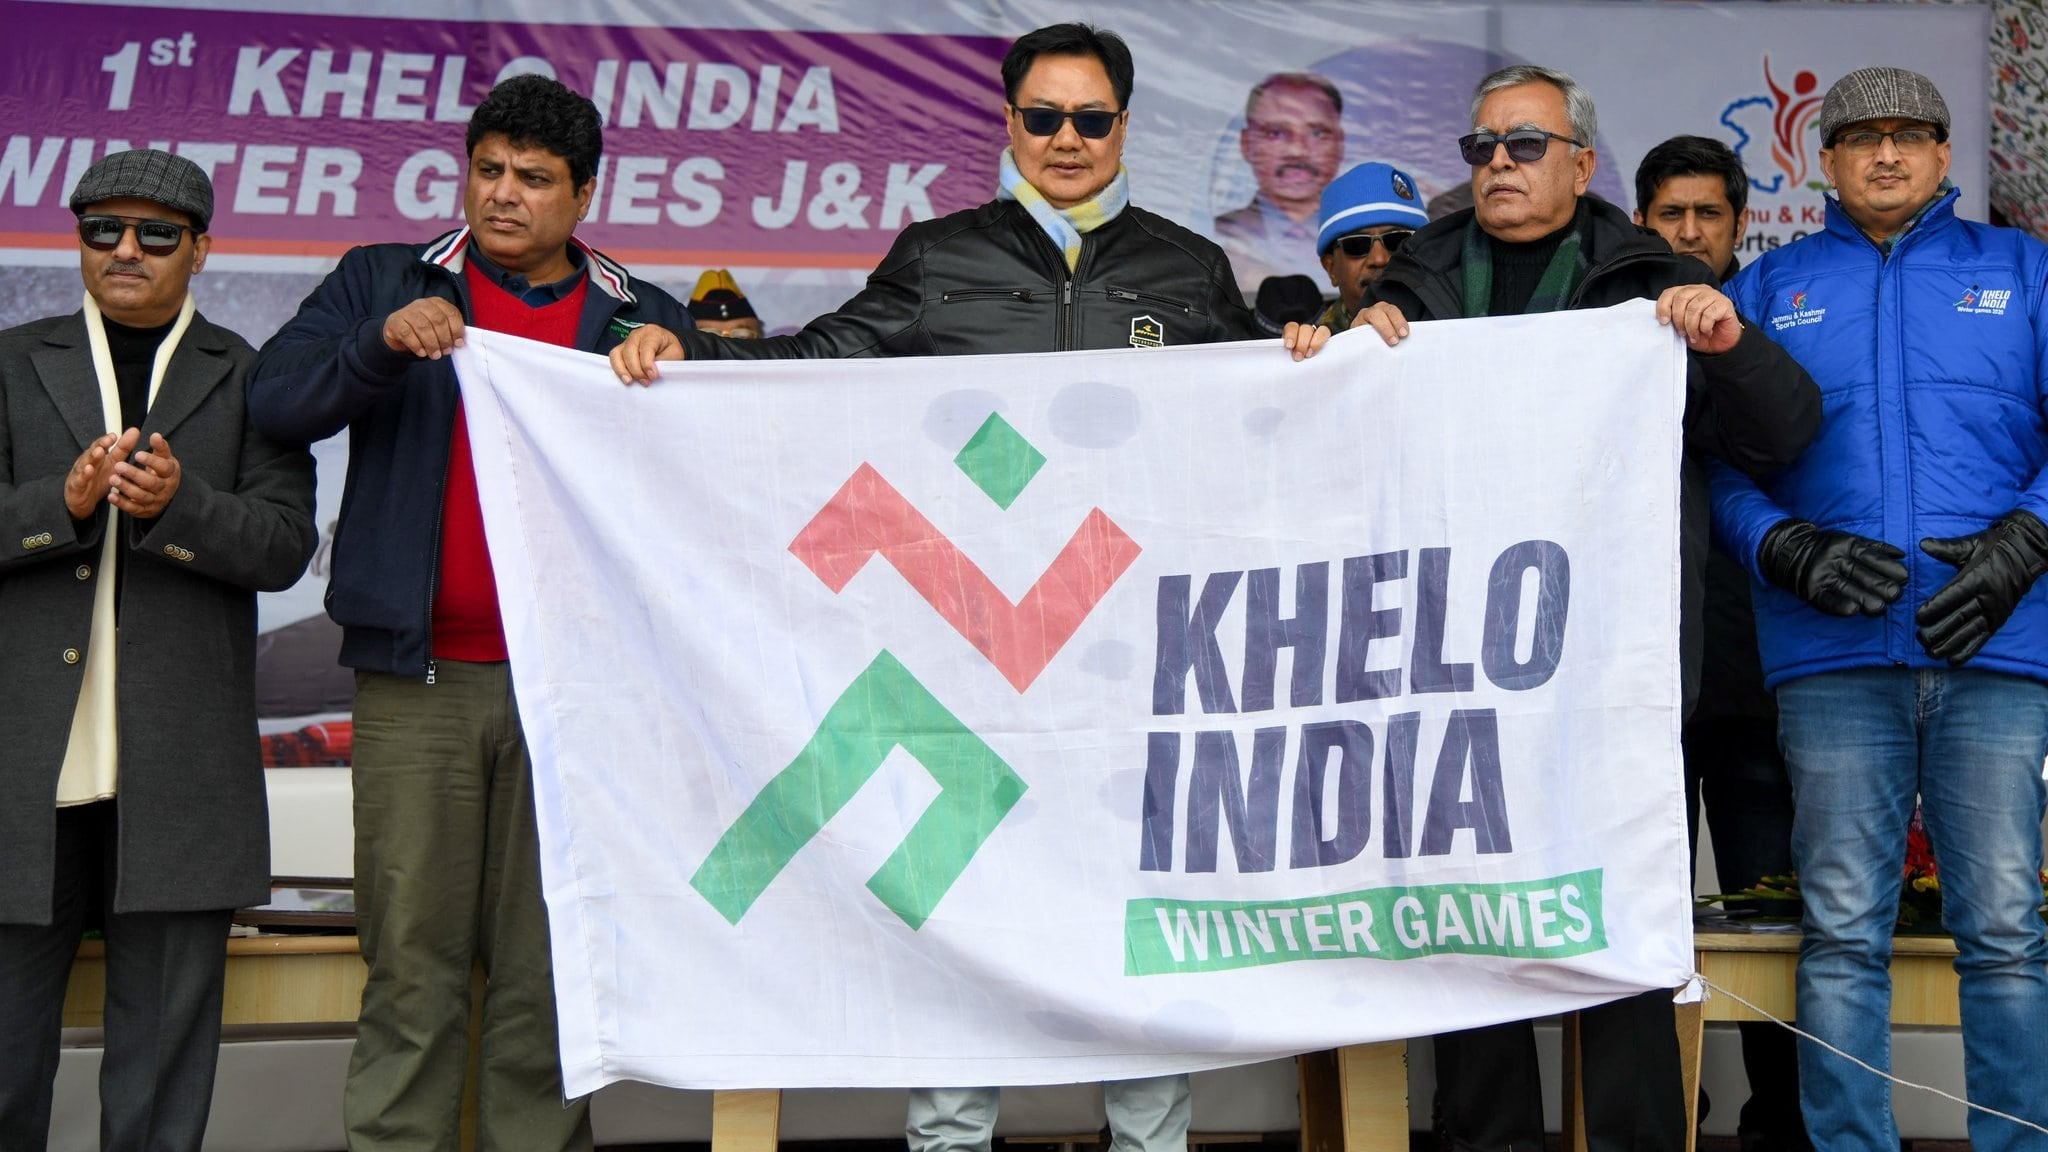 Kiren Rijiju at Khelo India Winter Games | Extreme Sports India